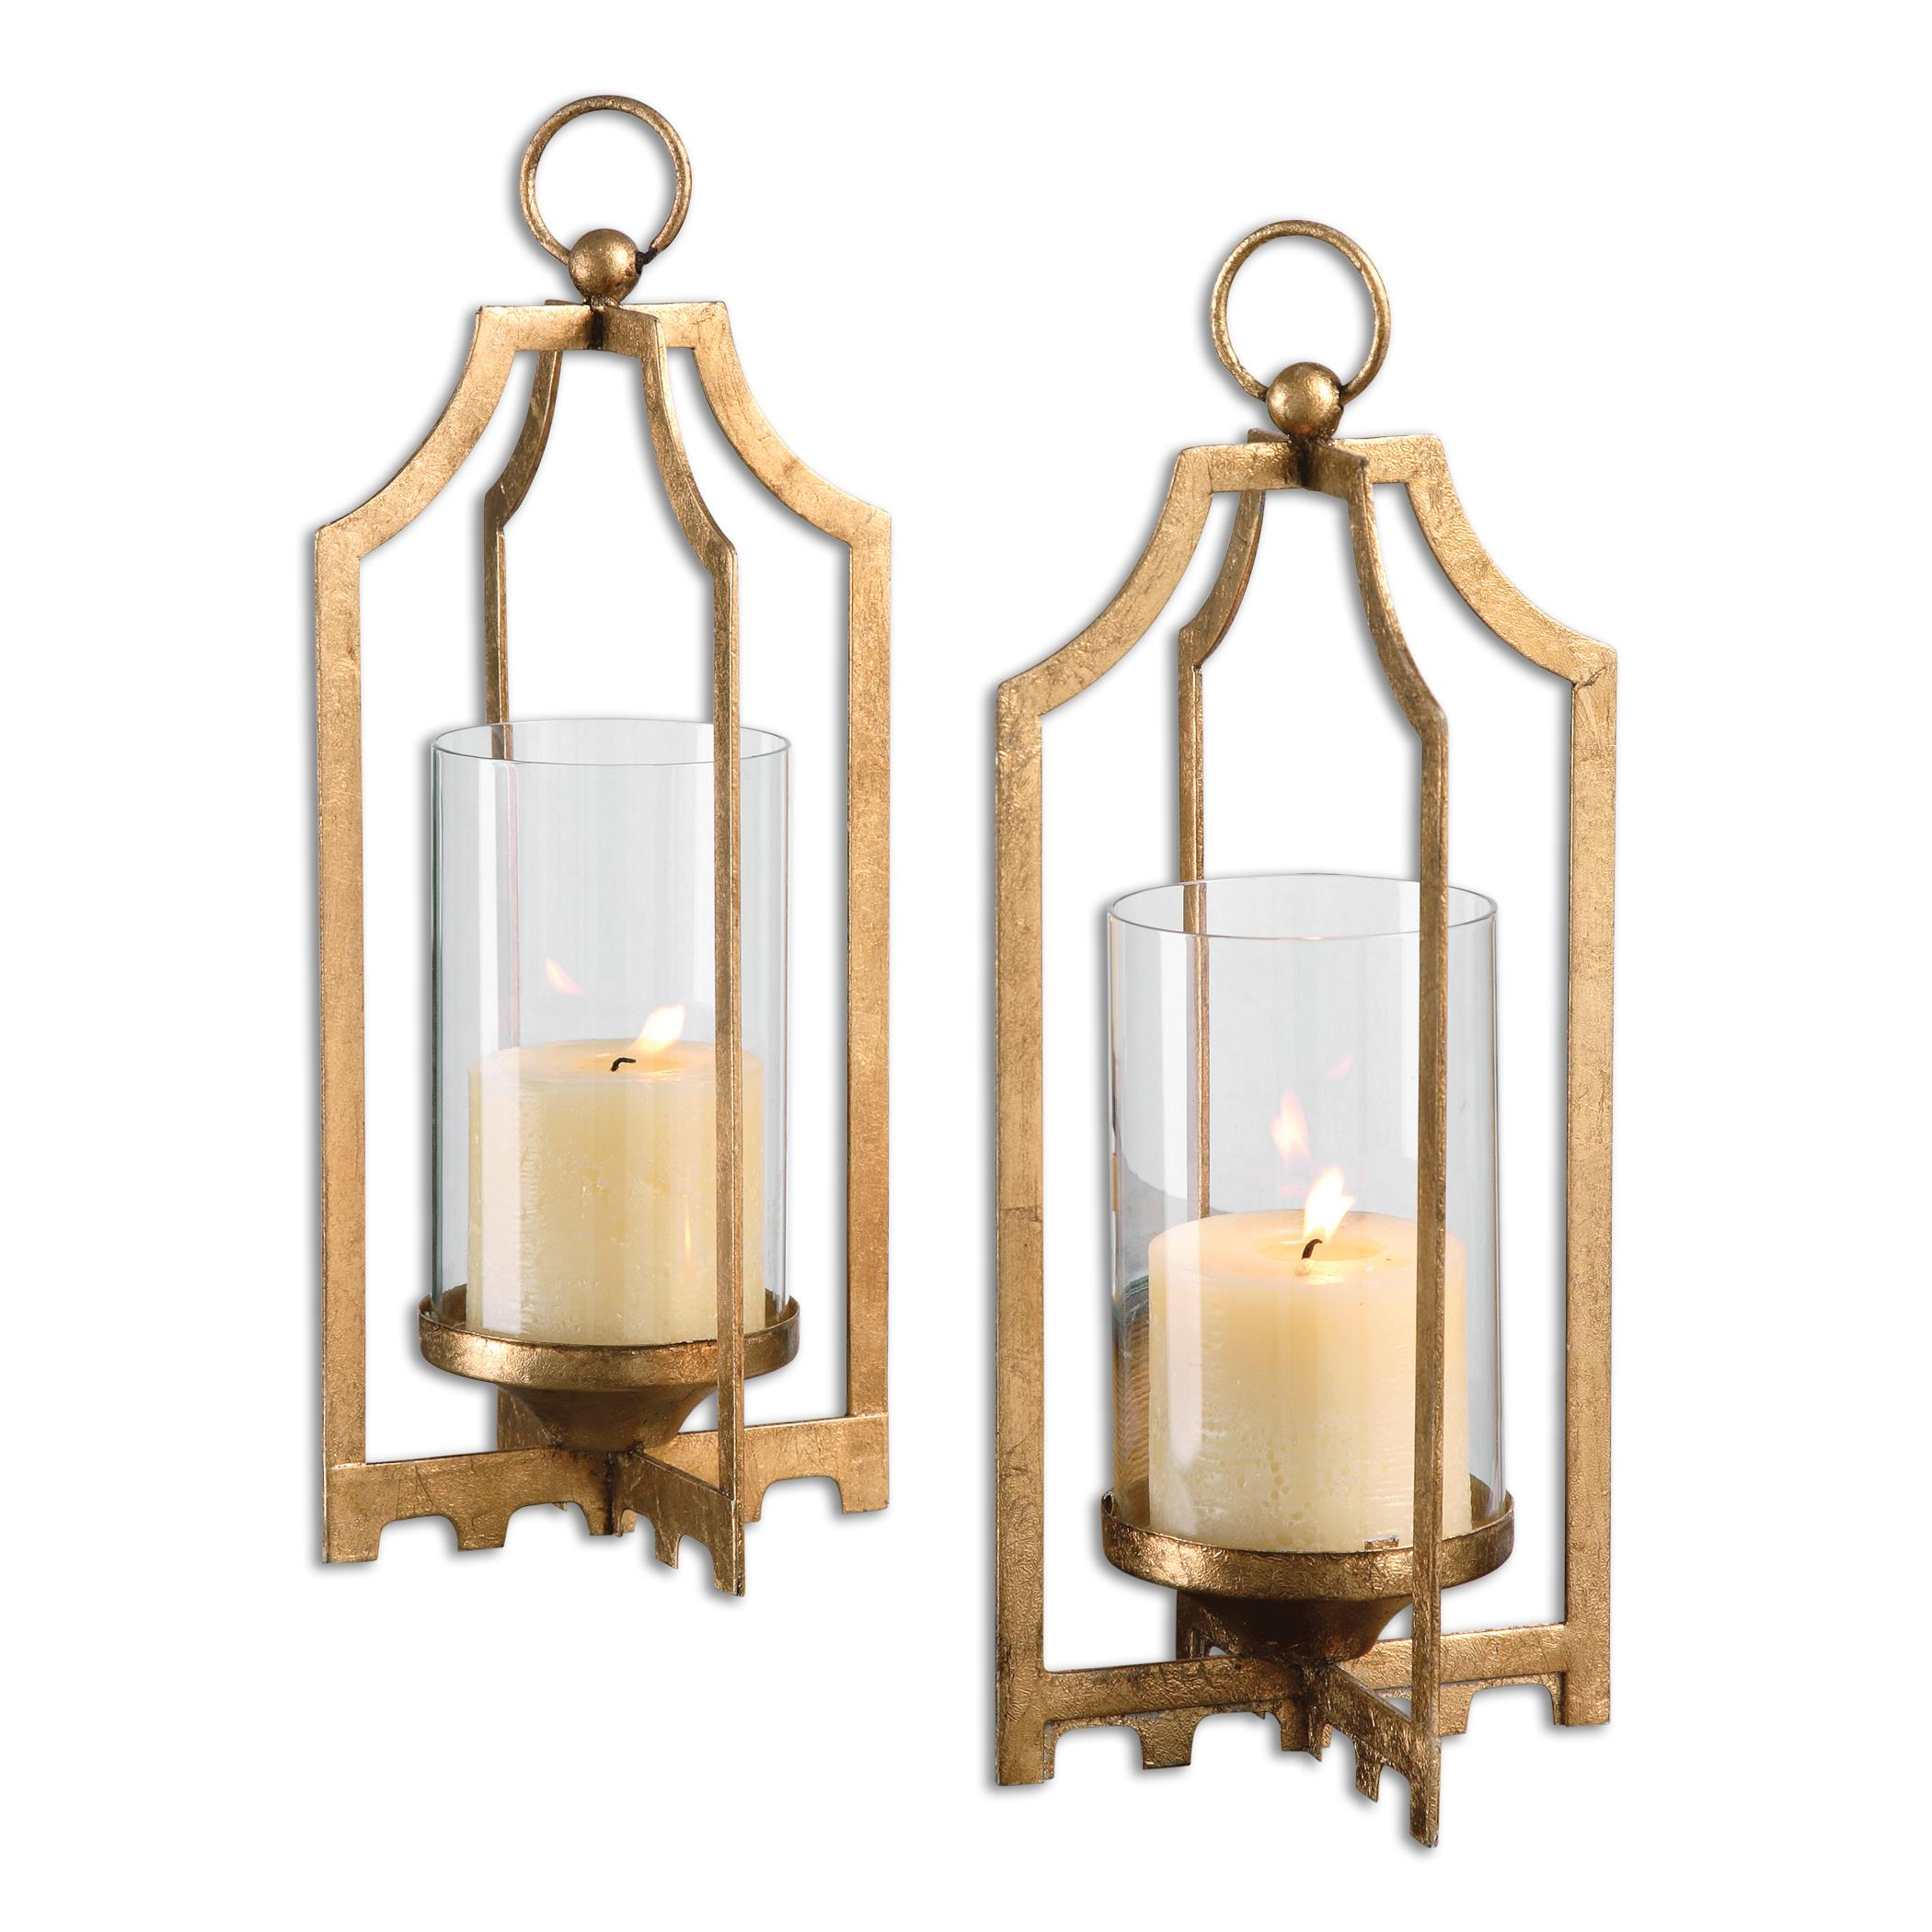 Accessories - Candle Holders Lucy Gold Candleholders S/2 by Uttermost at Dunk & Bright Furniture